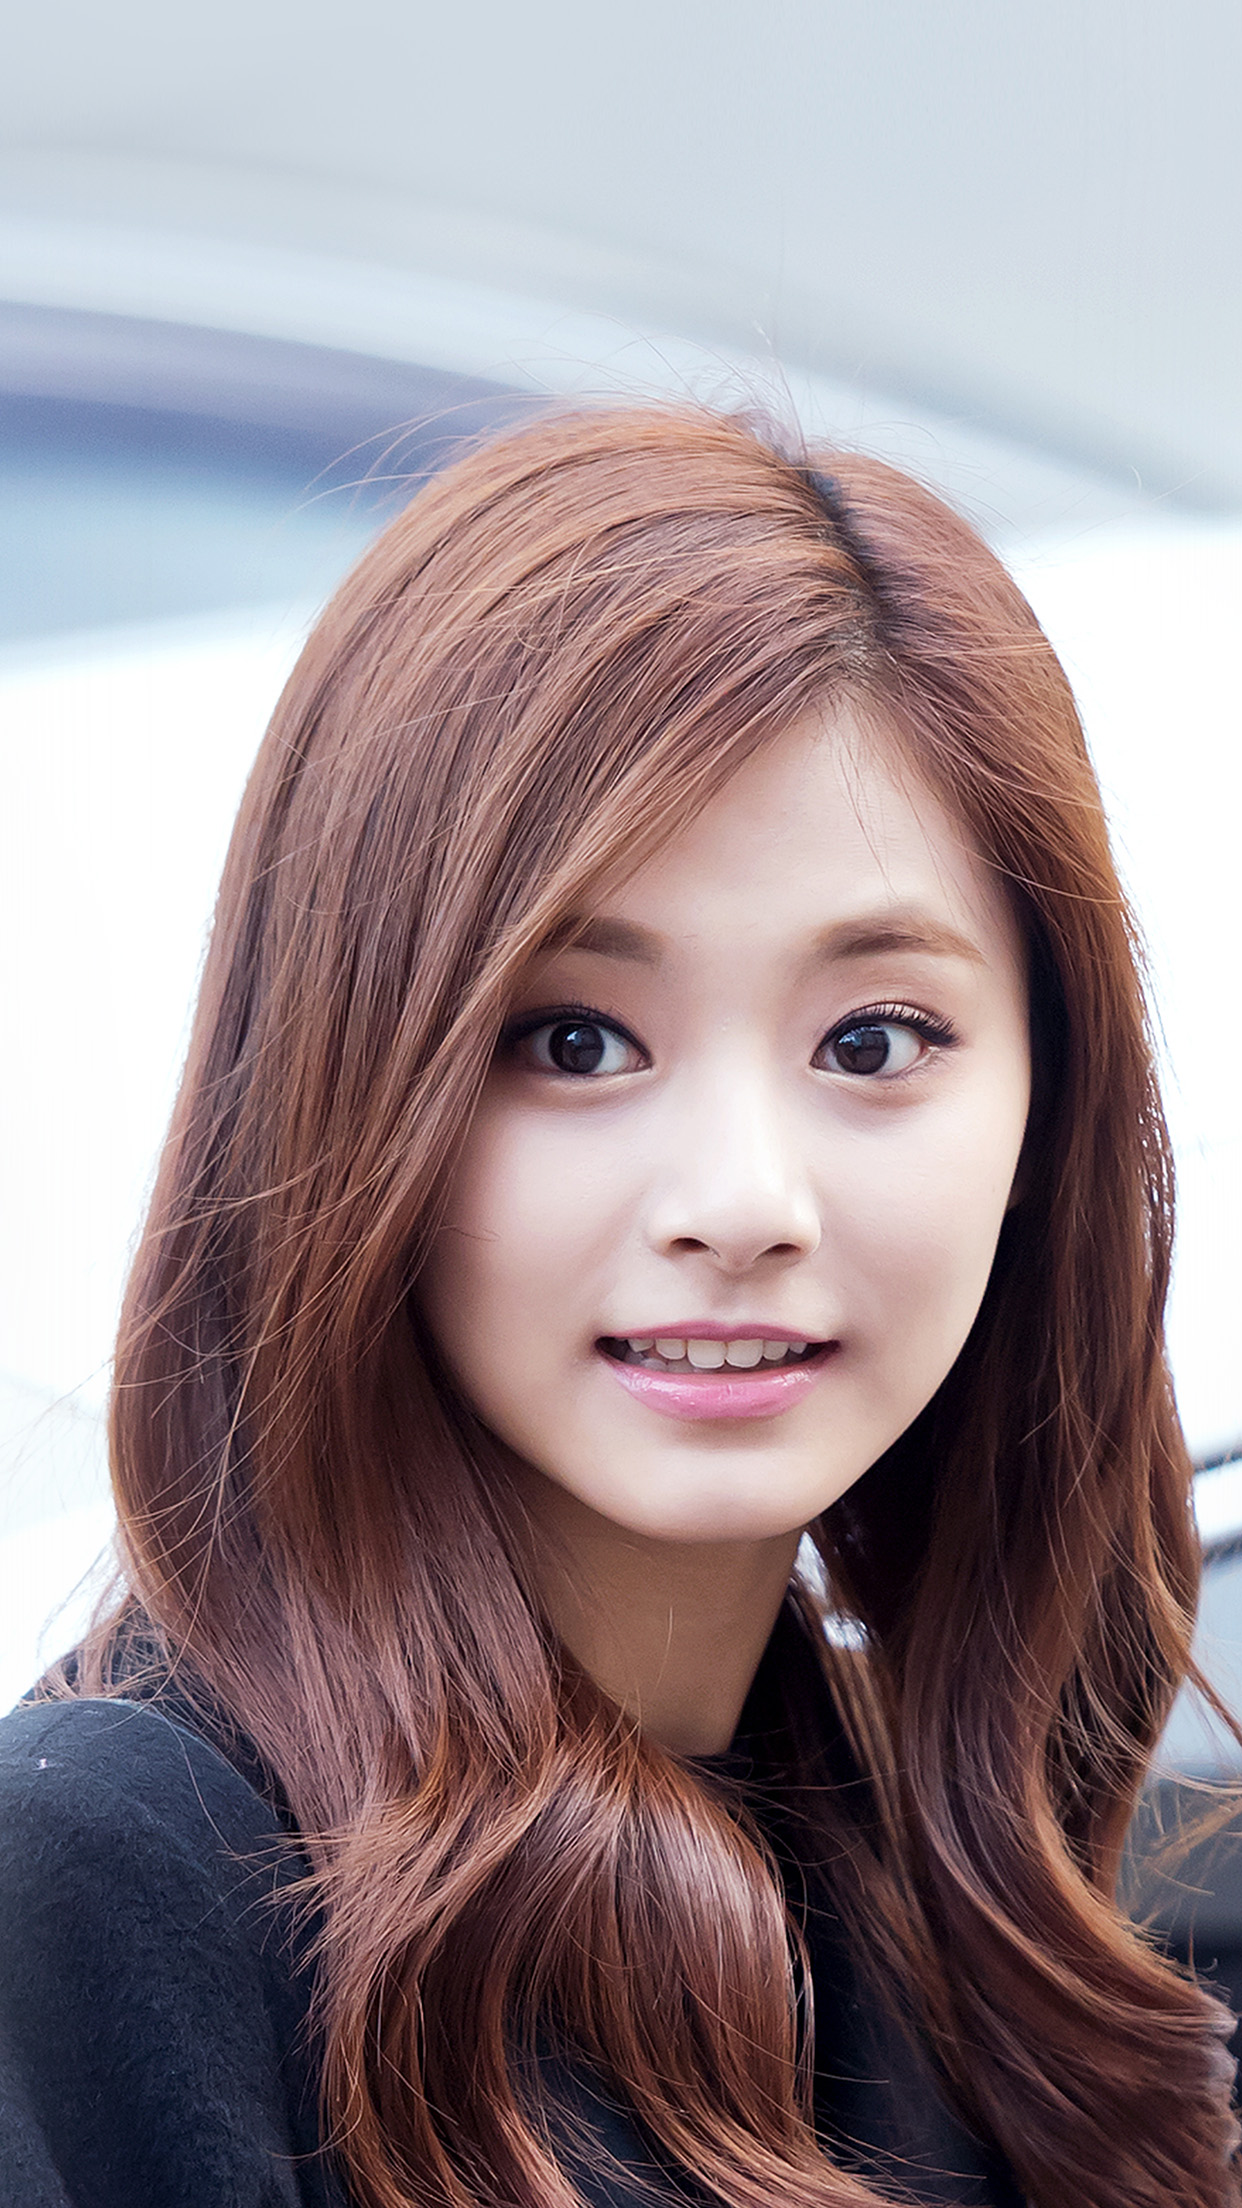 Tzuyu Twice Smile Cute Kpop Jyp Android Wallpaper Android